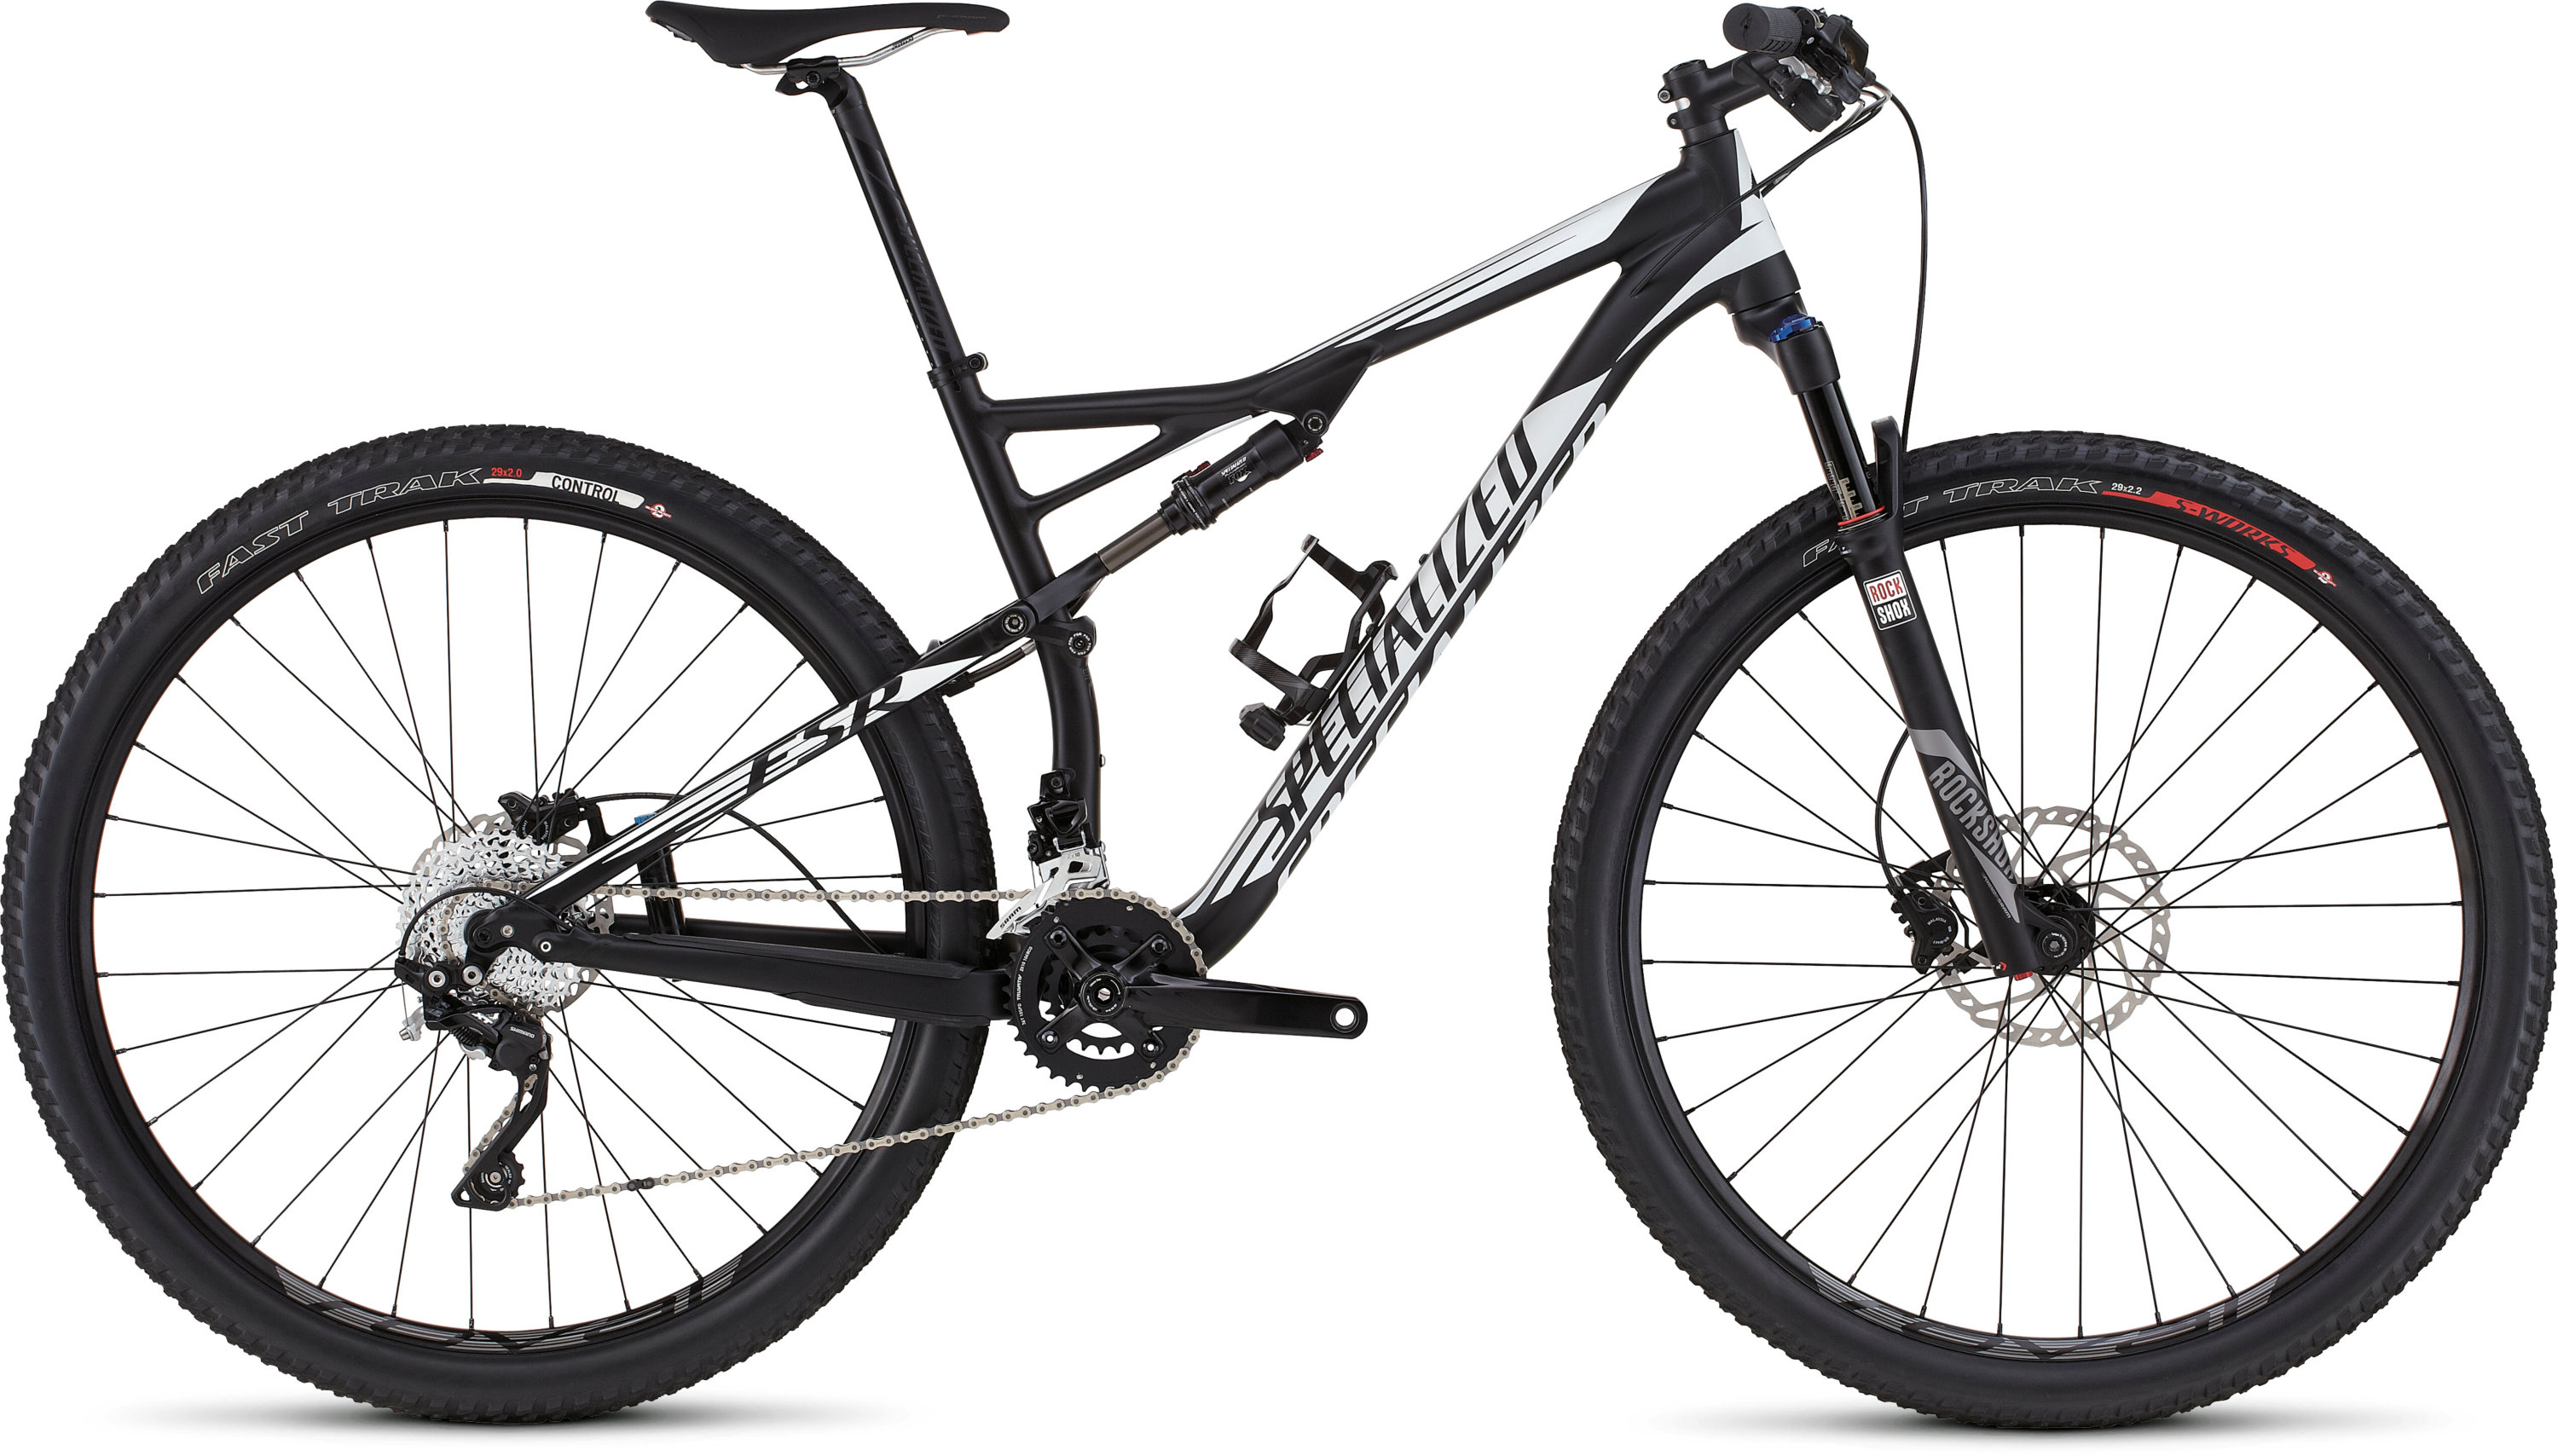 SPECIALIZED EPIC FSR COMP 29 BLK/WHT XL - SPECIALIZED EPIC FSR COMP 29 BLK/WHT XL